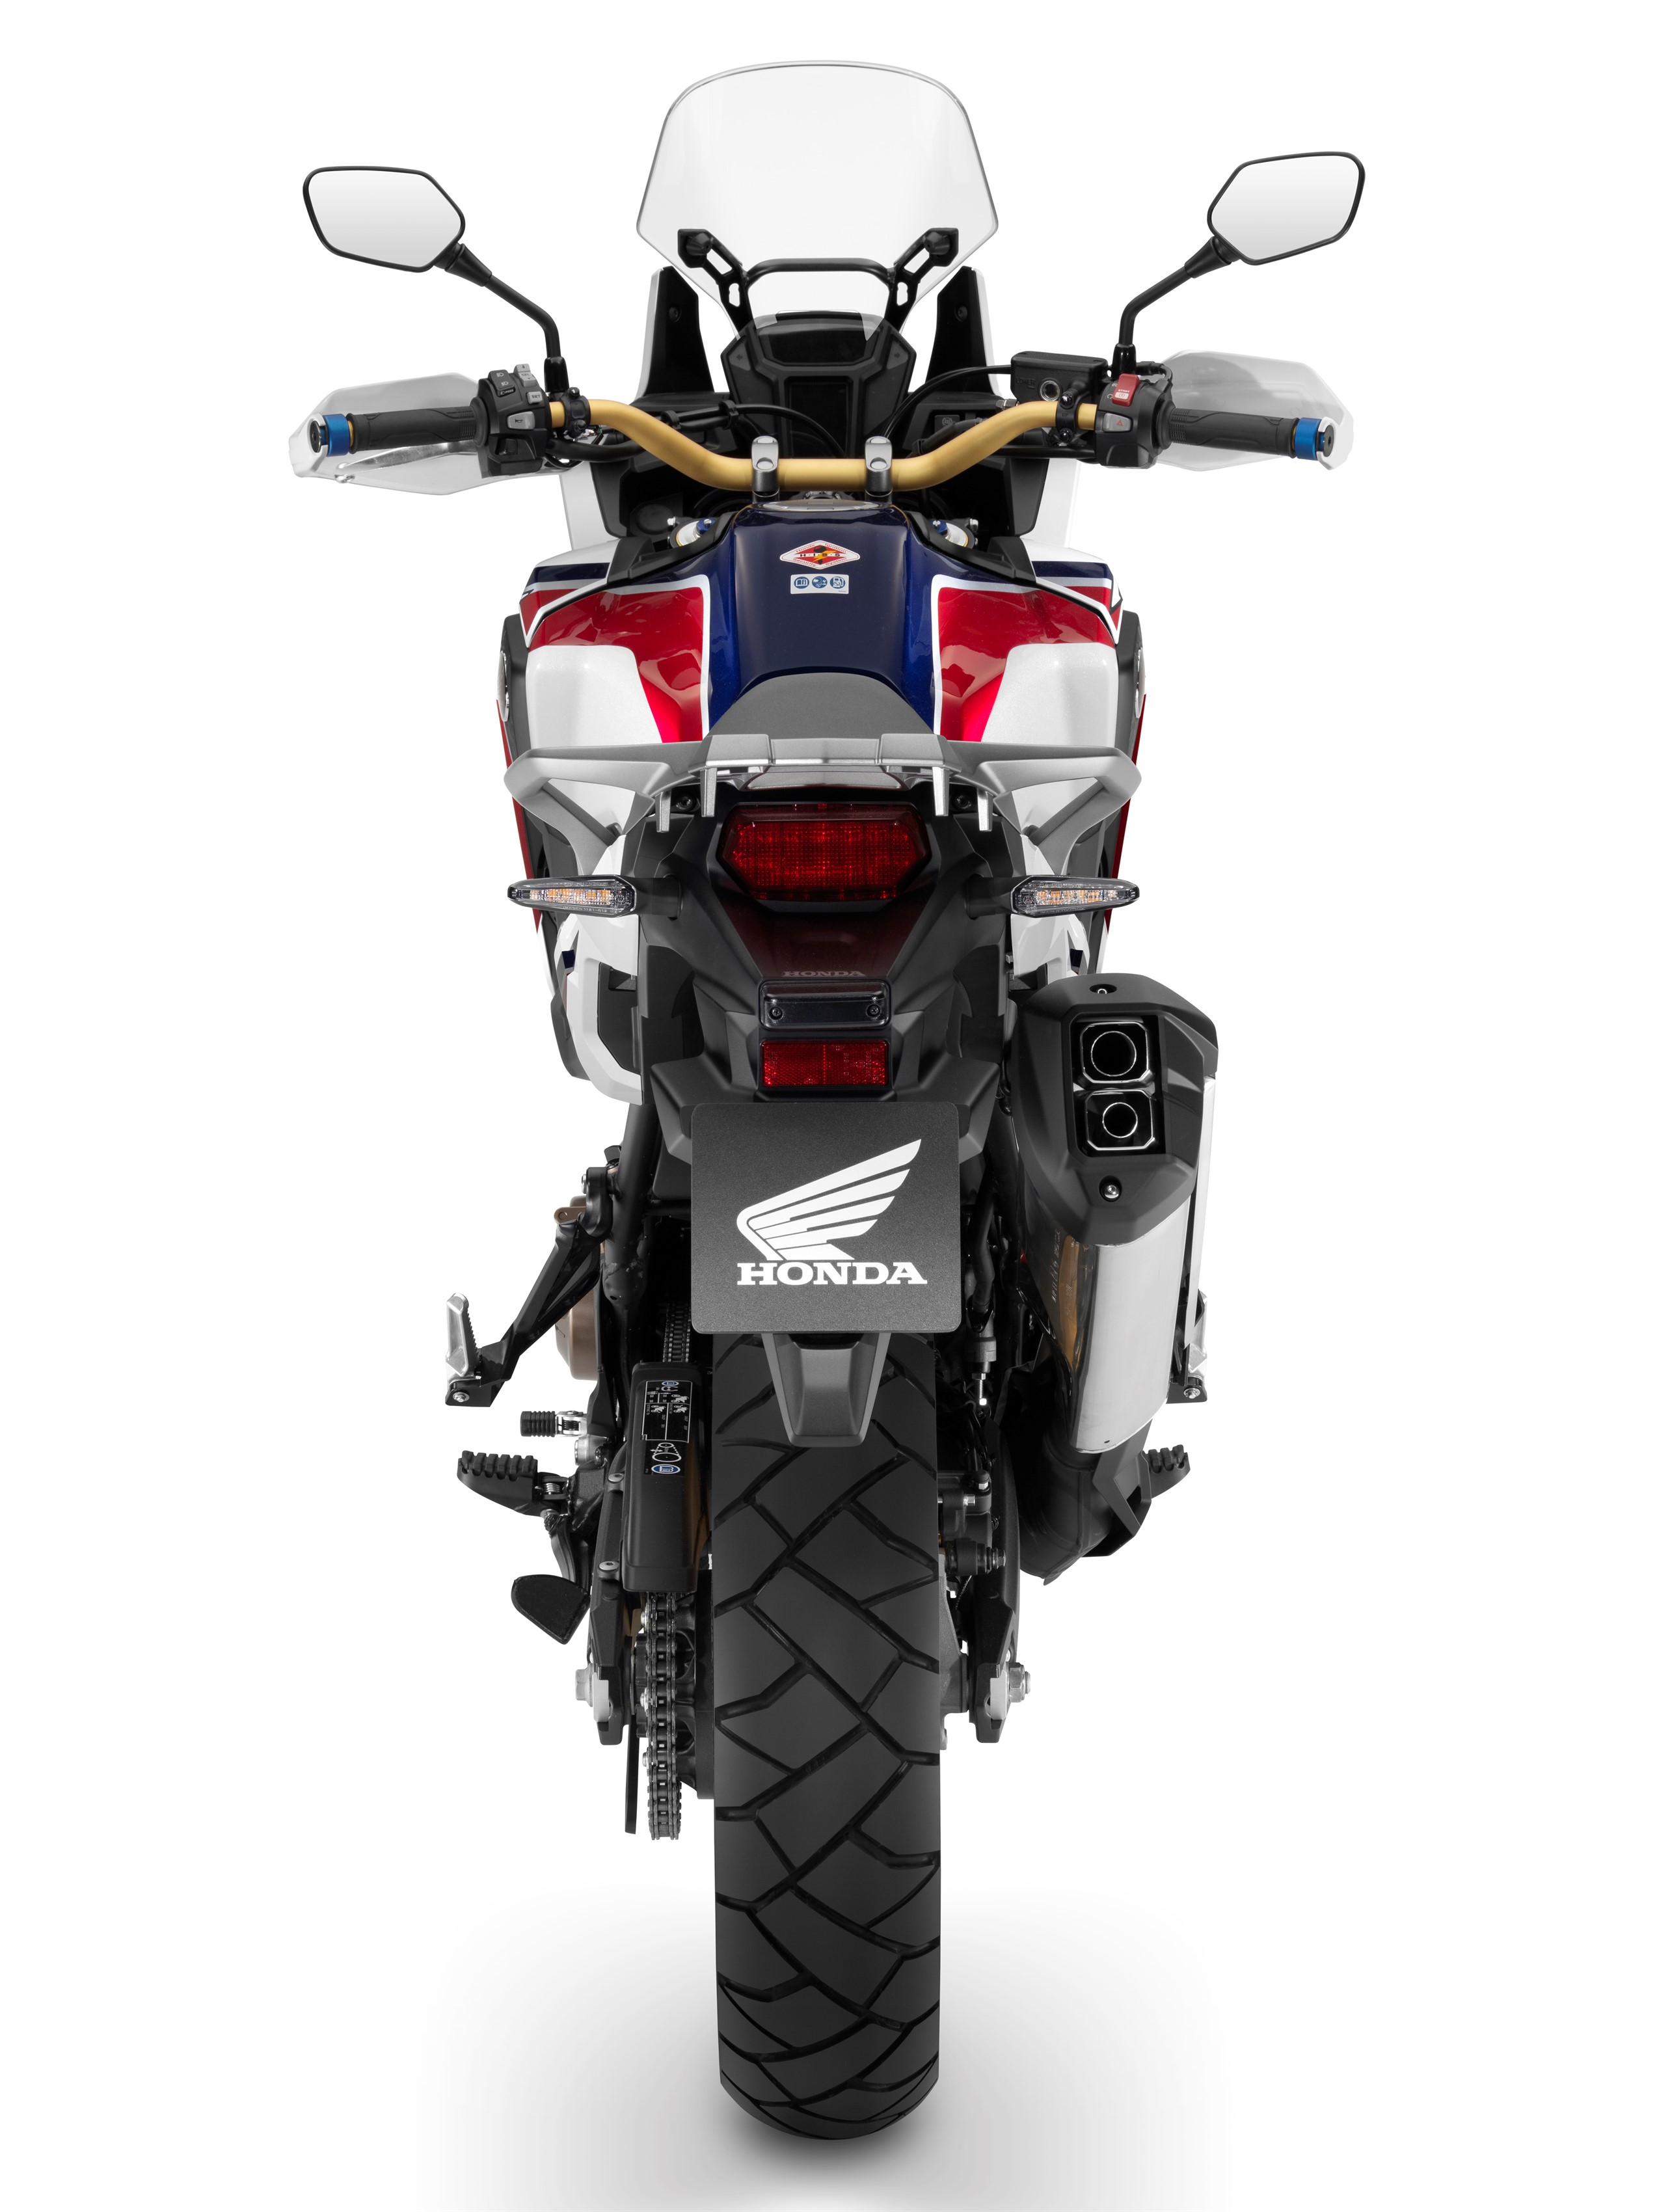 honda pcx exclusive touring with Honda Africa Twin Super Gallery And Full Specs on Mc as well Honda Africa Twin Super Gallery And Full Specs moreover 052014 2014 Bmw K1600gtl Exclusive 20140518 172810 1 further 20448675 furthermore Honda Africa Twin Super Gallery And Full Specs.